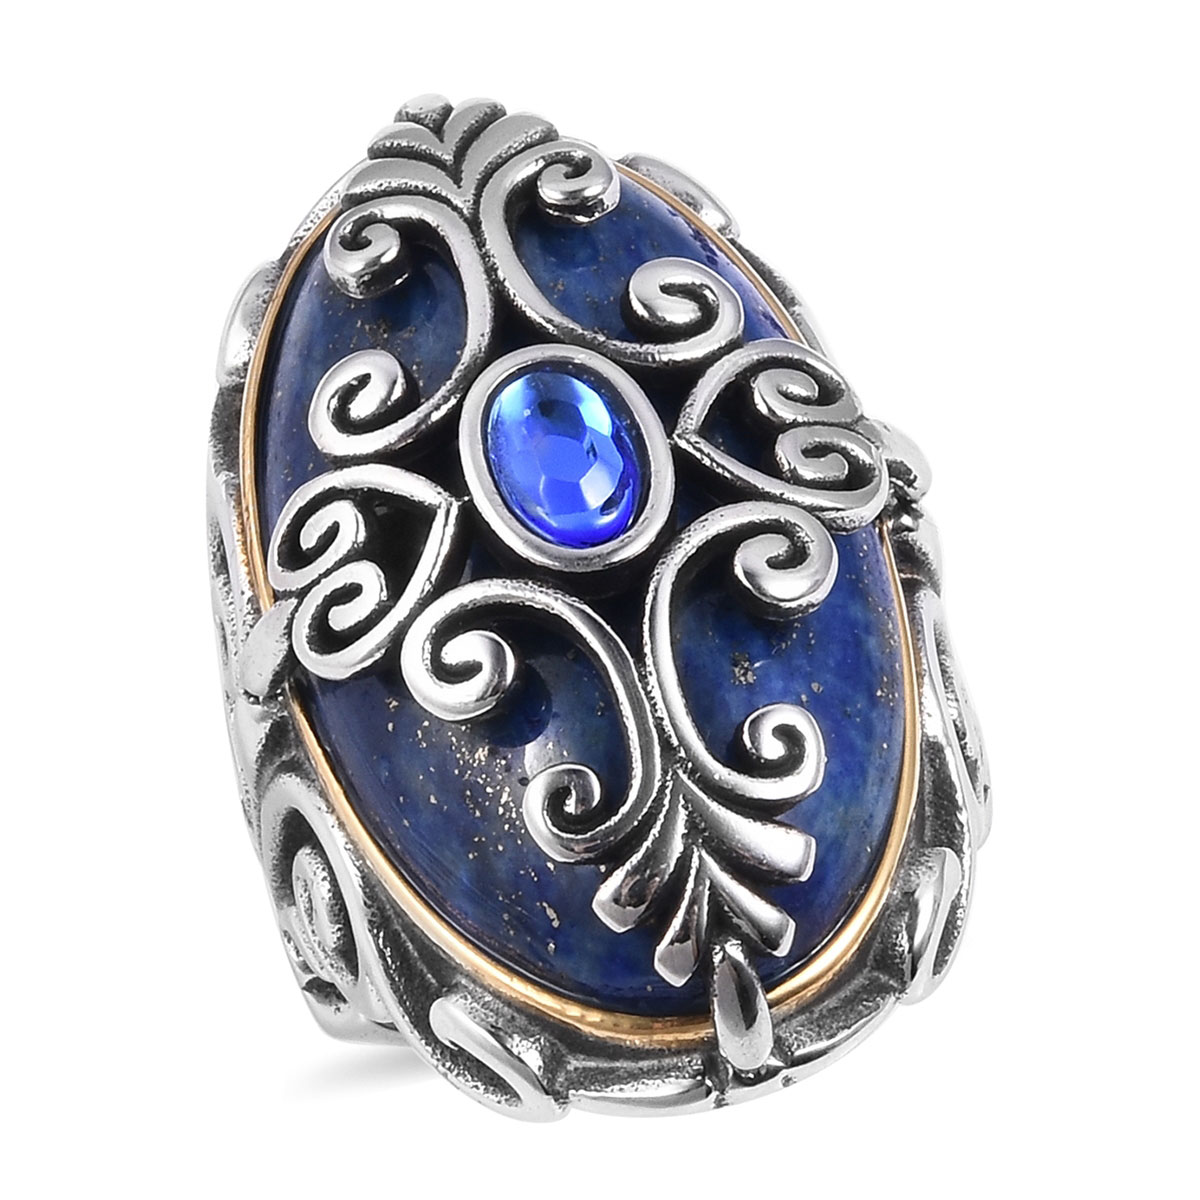 Shop LC Delivering Joy Statement Ring Stainless Steel Round Lapis Lazuli Jewelry for Women Size 8